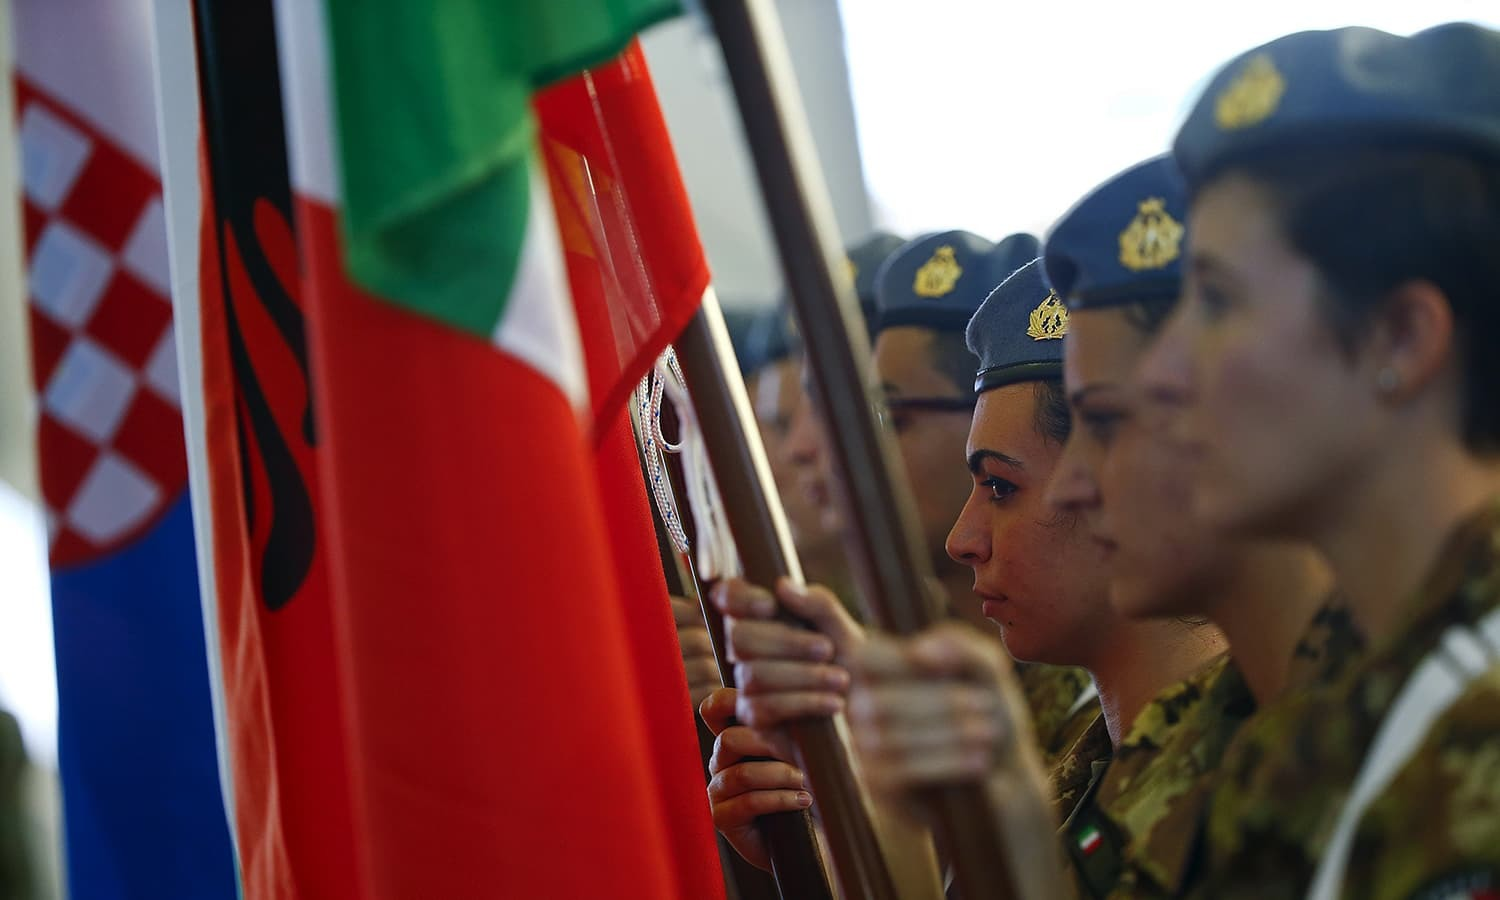 Italian soldiers hold flags during a NATO military exercise at the Birgi NATO airbase in Trapani, Italy- Reuters